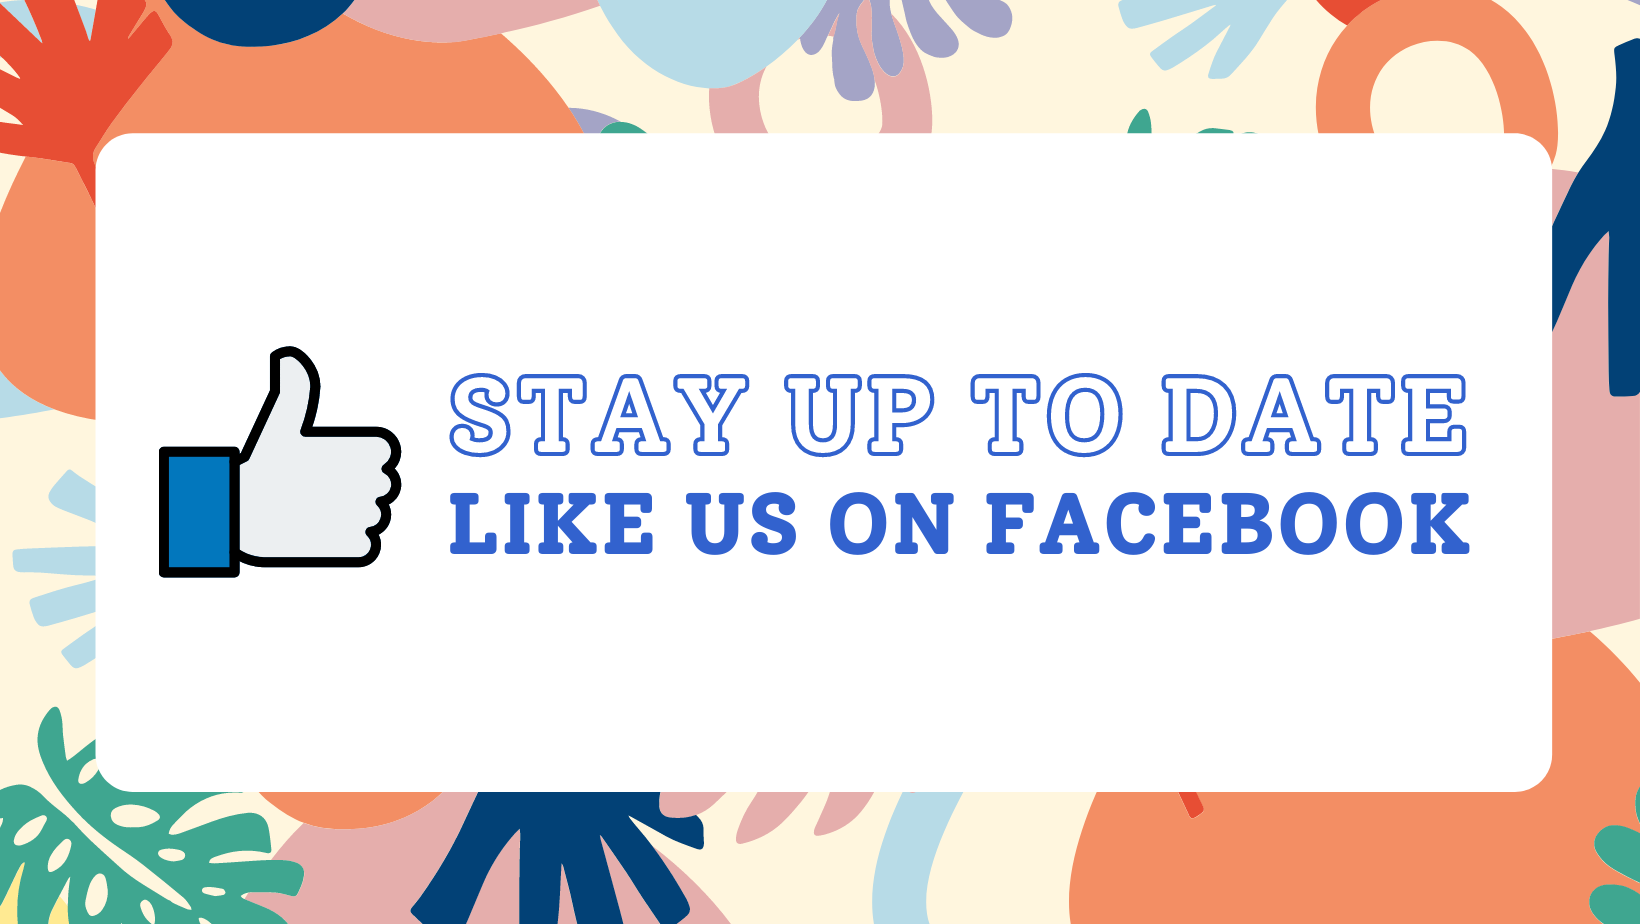 Stay up to date - Like us on Facebook